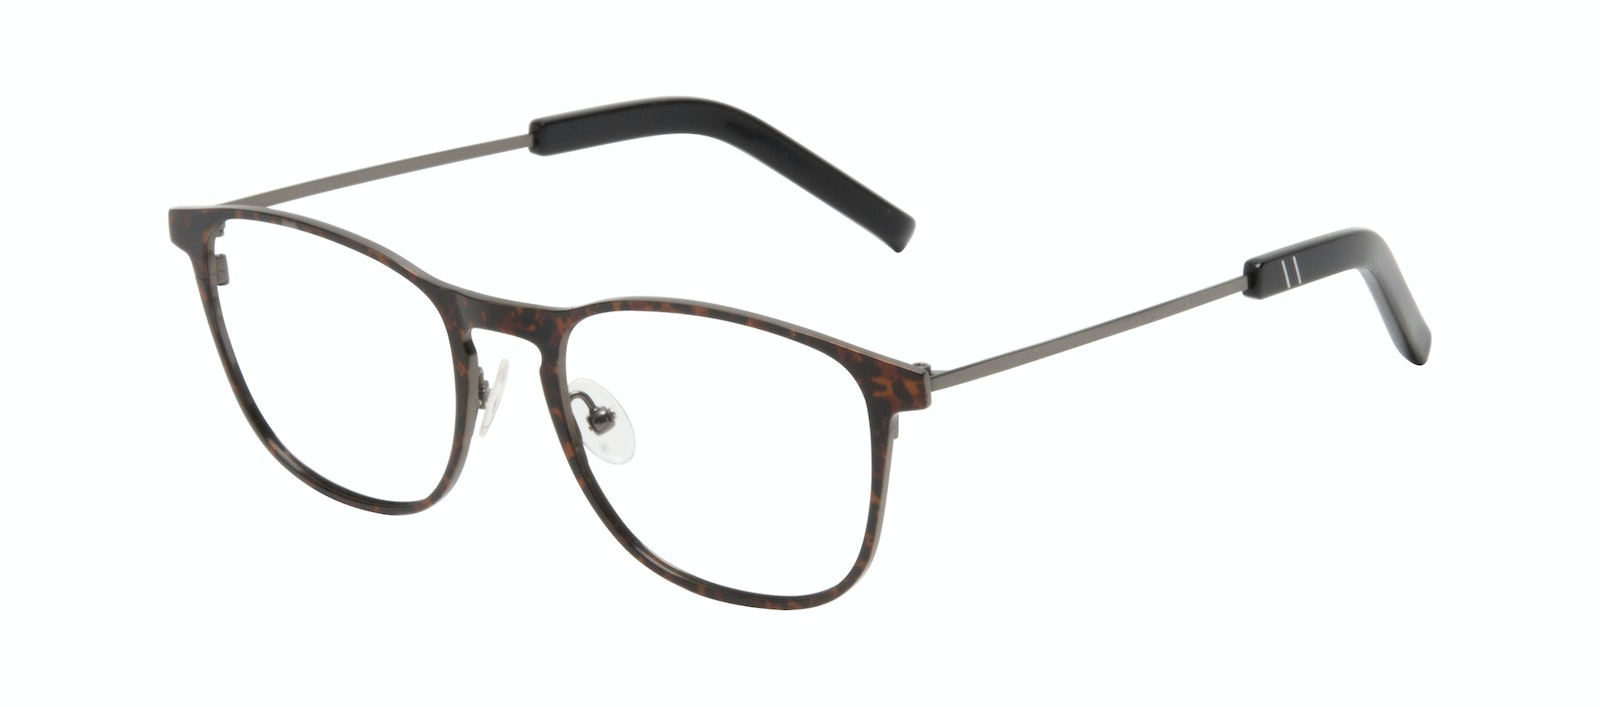 Affordable Fashion Glasses Square Eyeglasses Men Elevate Tortoise Tilt